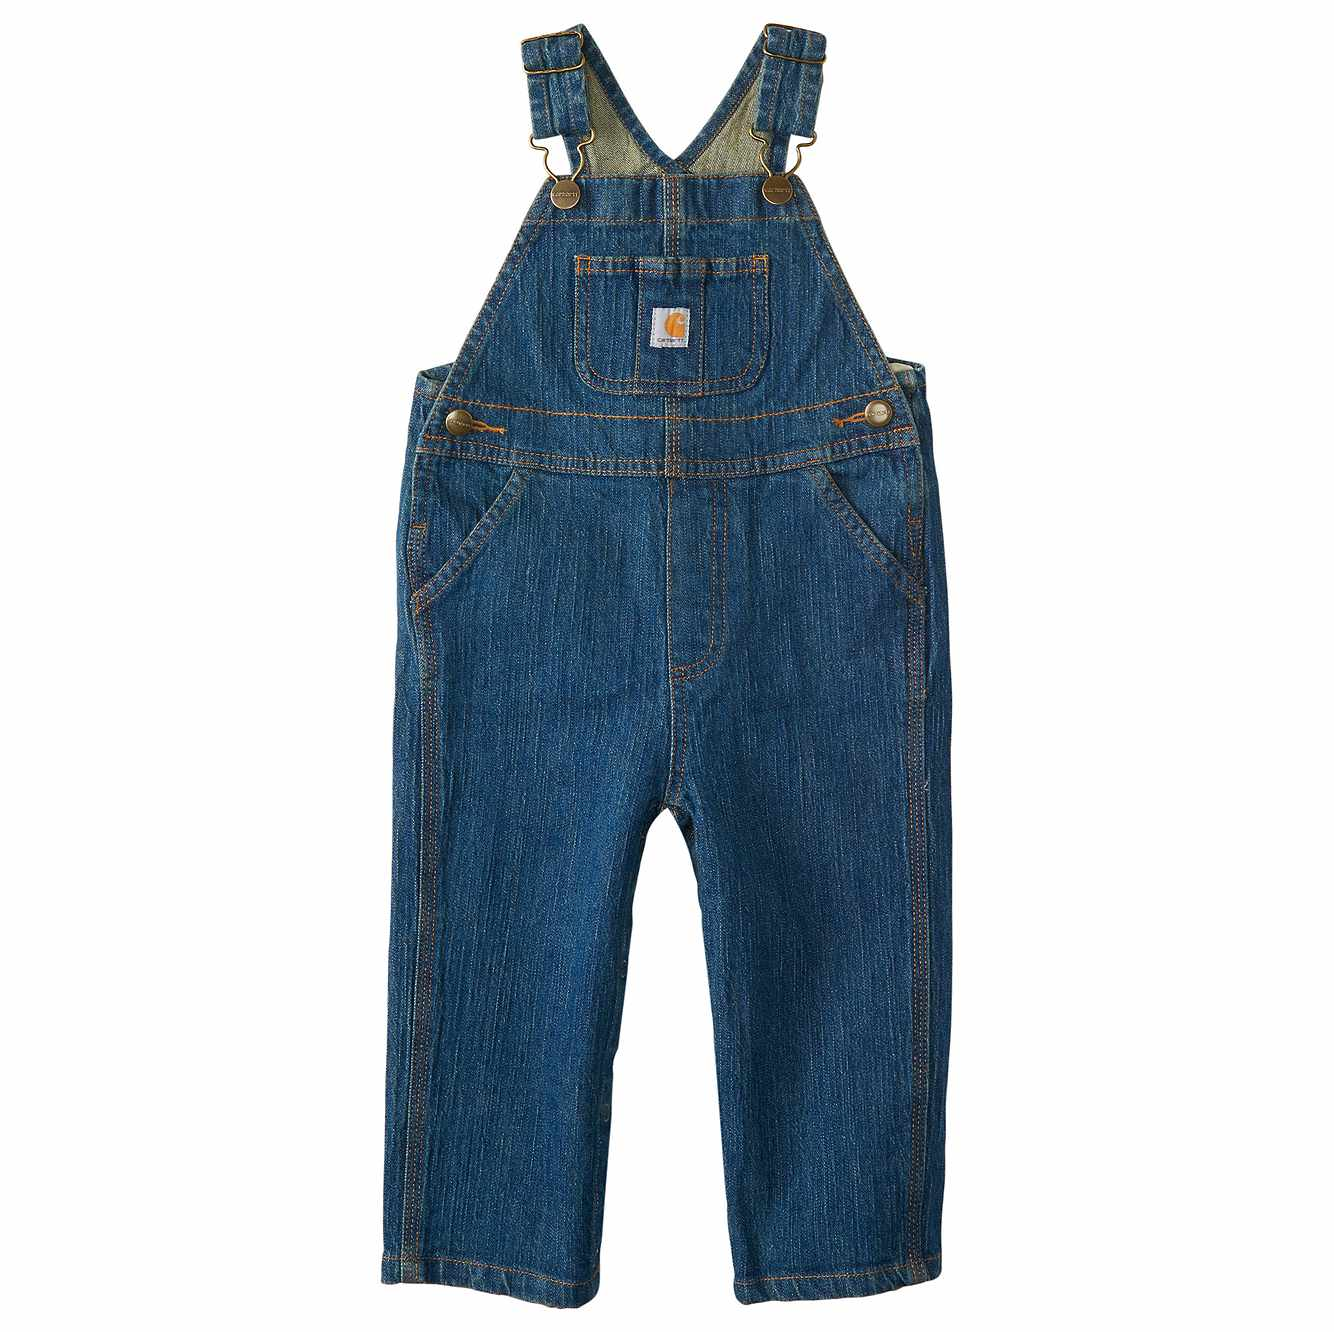 Picture of Washed Denim Bib Overall in Medium Wash